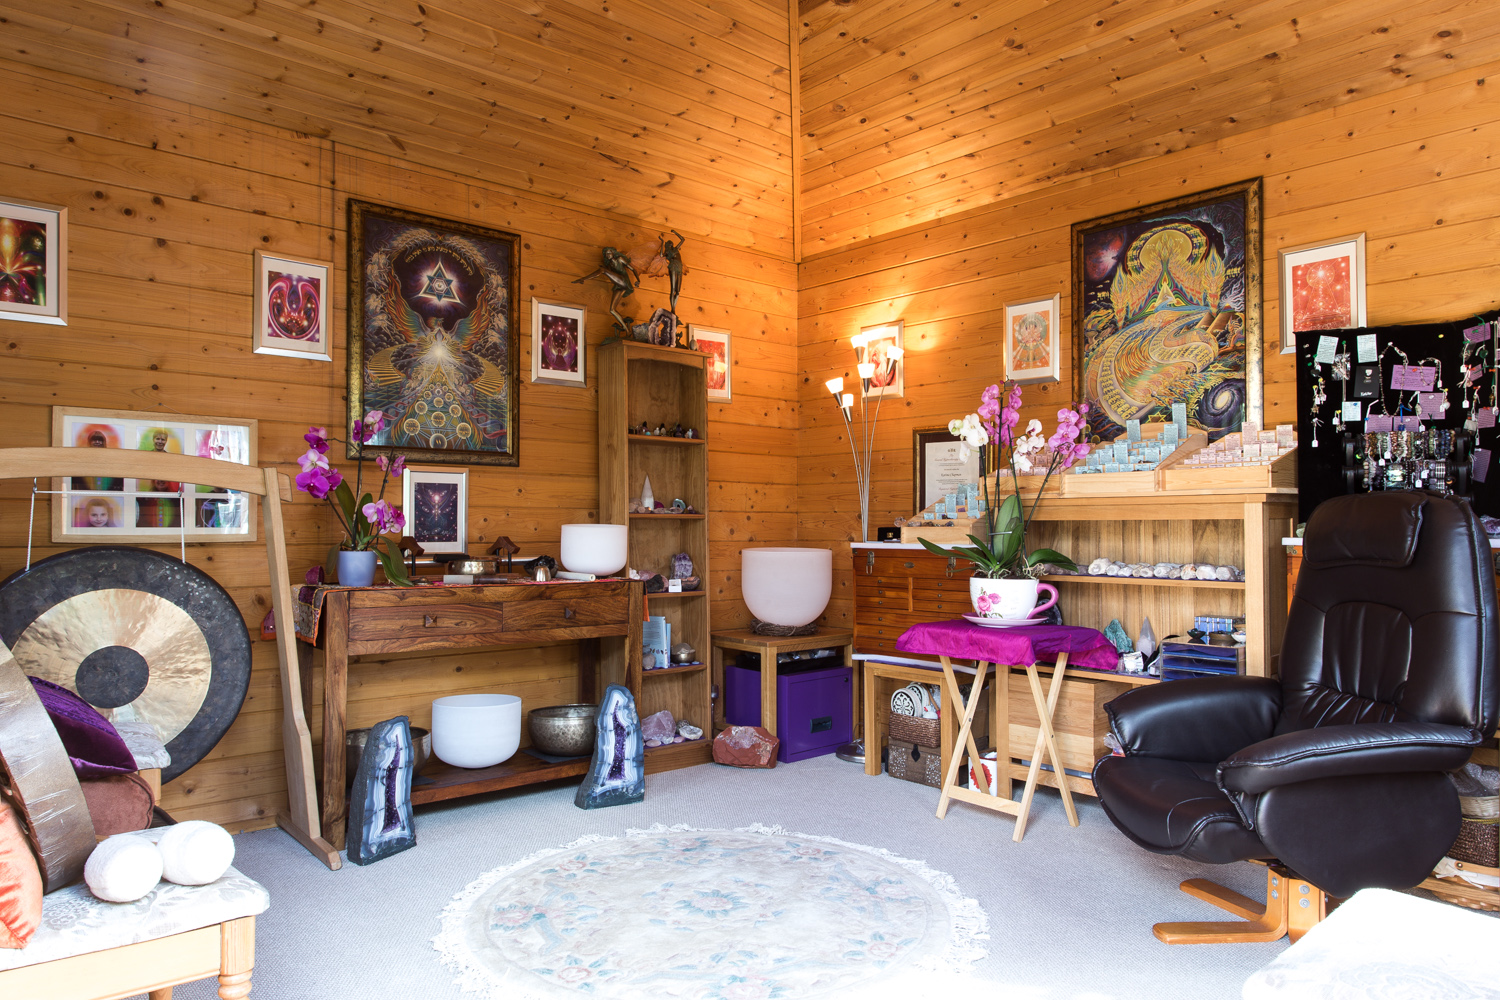 Drum, Gong, Mantra, Mindfulness, Soundbath, Relaxation and more